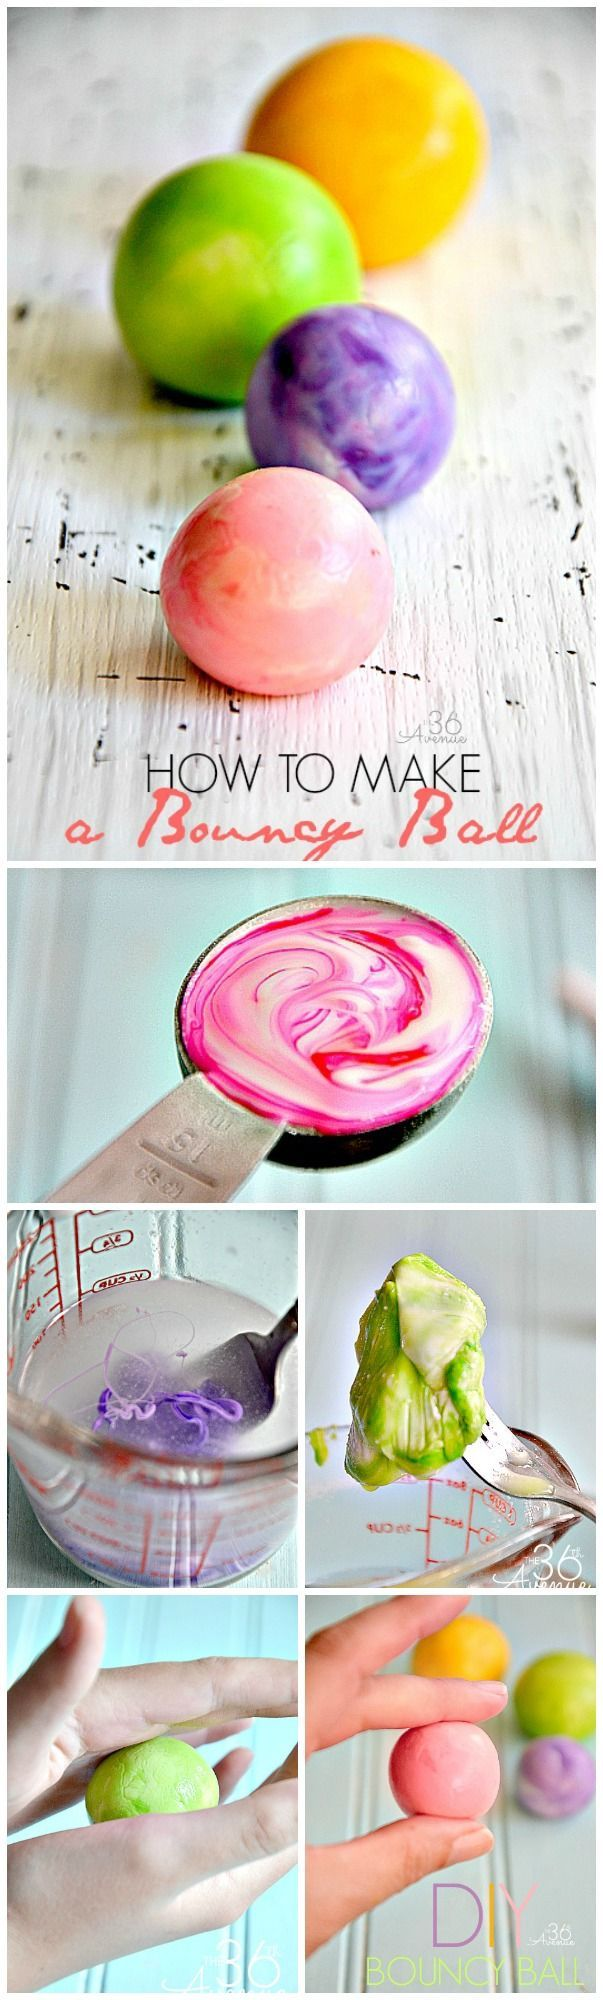 How to make a bouncy balls! Fun activity for the kids!